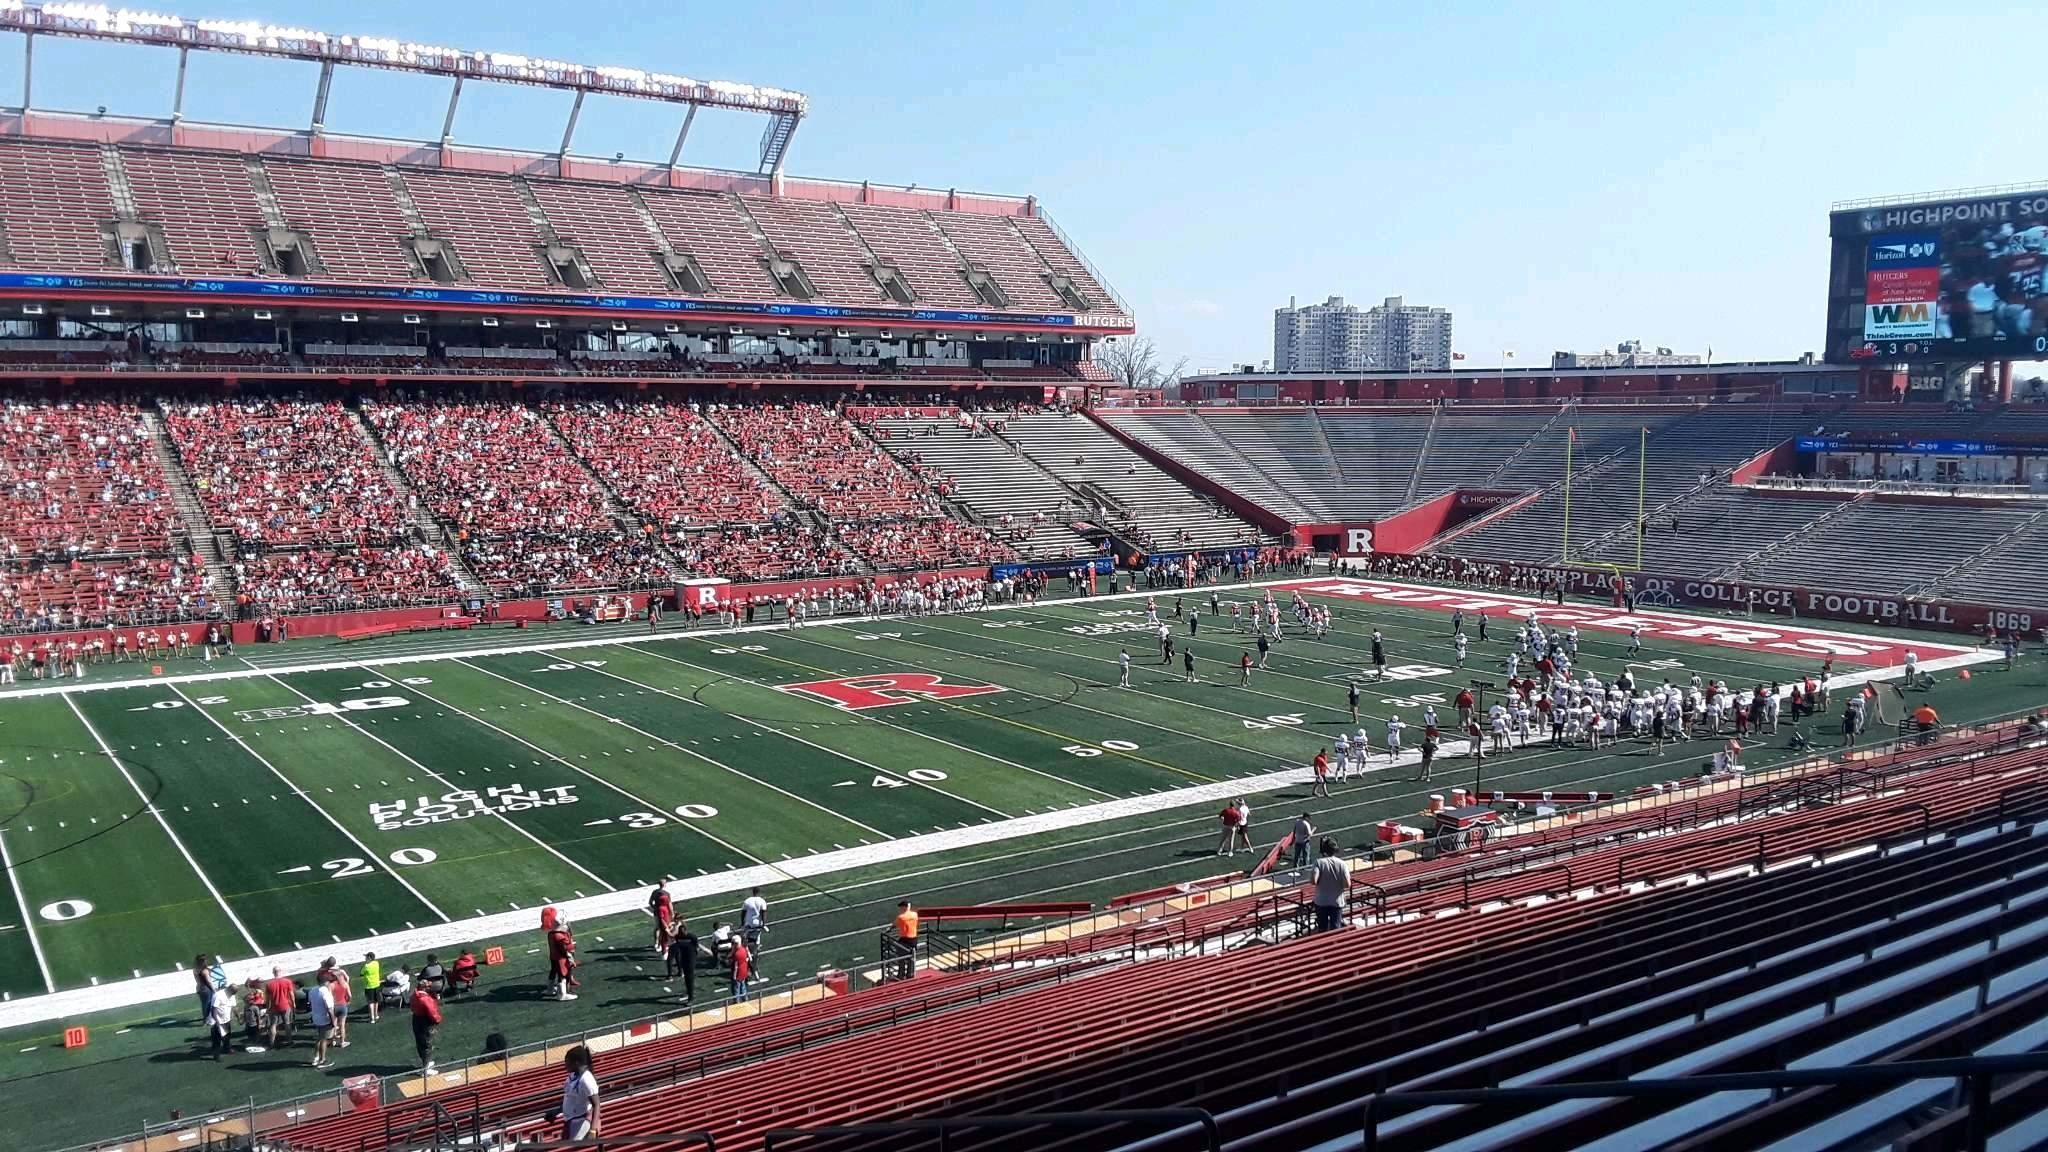 2048x1152 High Point Solutions Stadium, section 108, row 38, seat 14 - Rutgers  Scarlet Knights, shared by JesseD